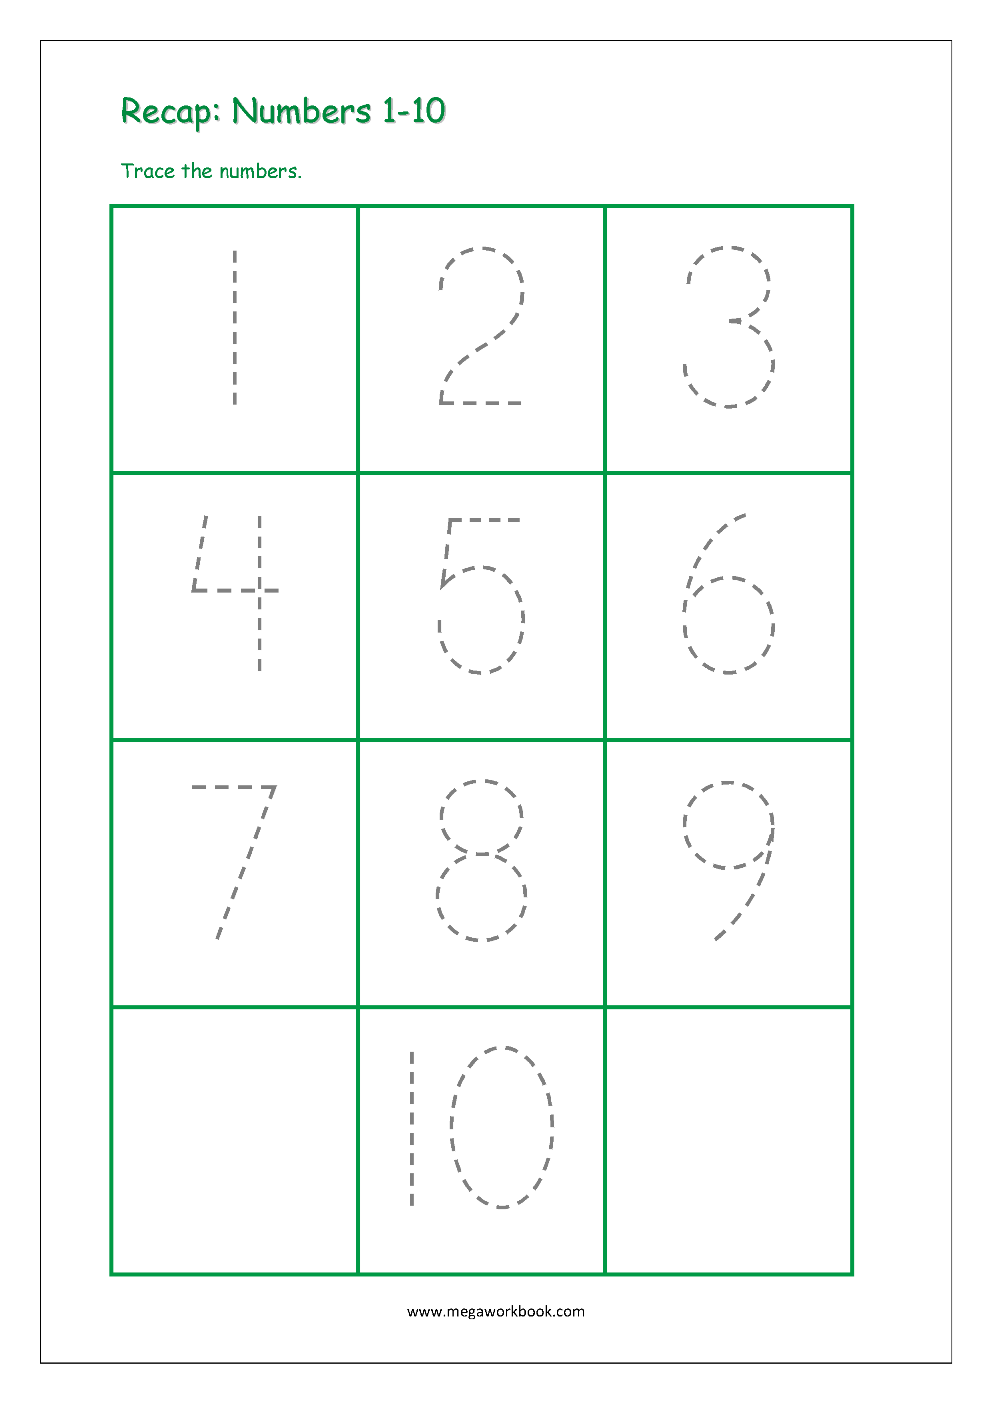 Number Tracing - Tracing Numbers - Number Tracing Worksheets intended for Alphabet Tracing Worksheets 1-10 Pdf